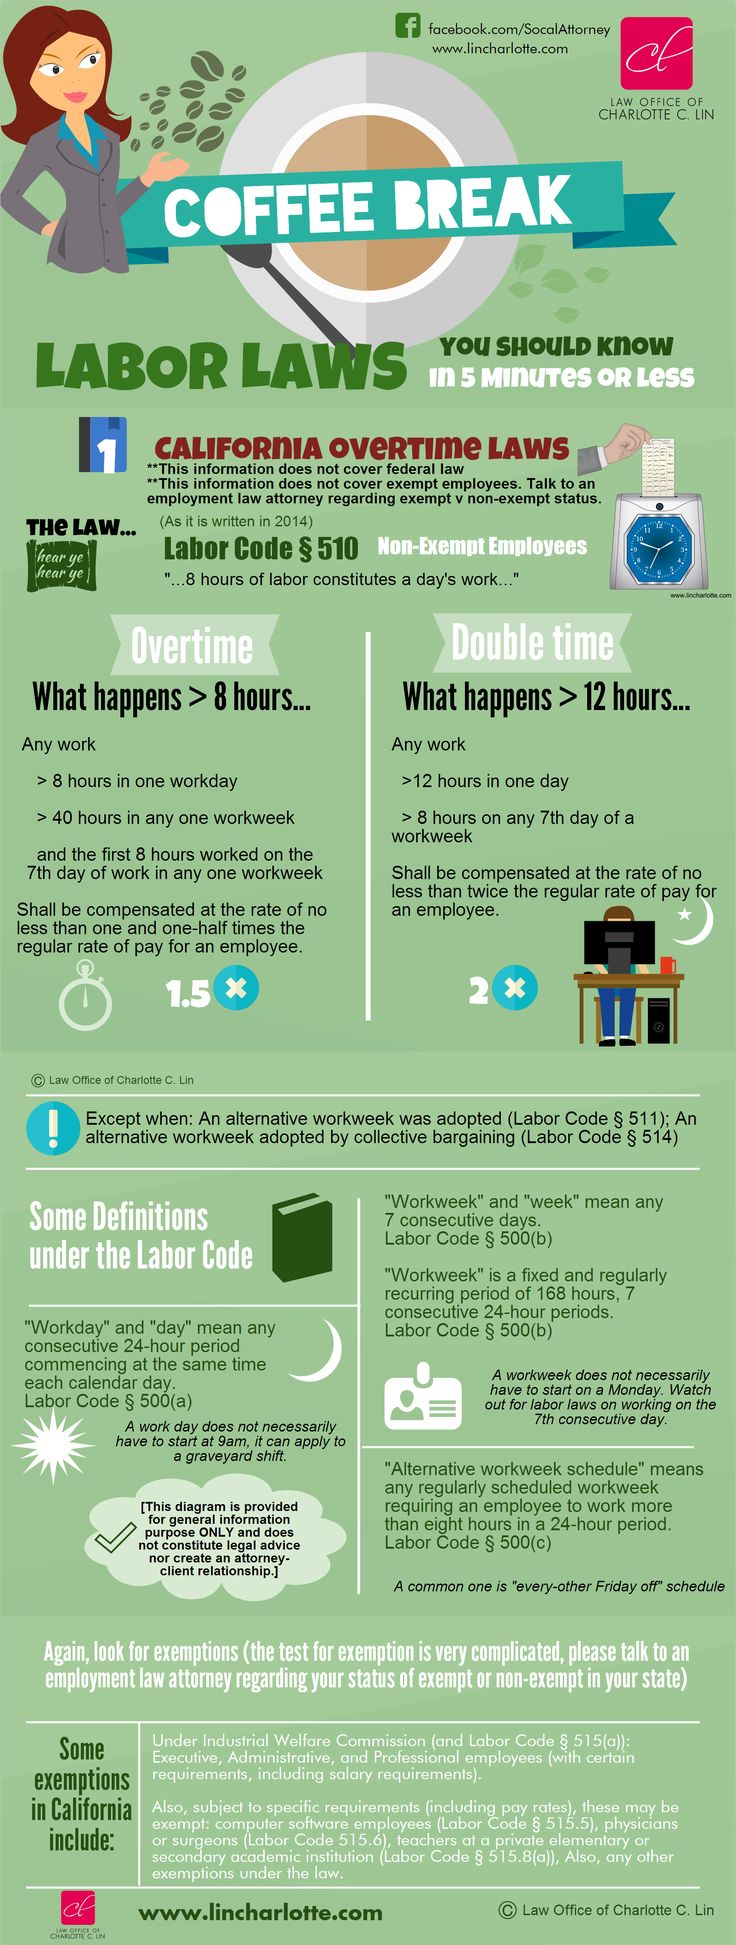 Labor Laws You Should Know in 5 Minutes Or Less   #infographic #LaborLaw